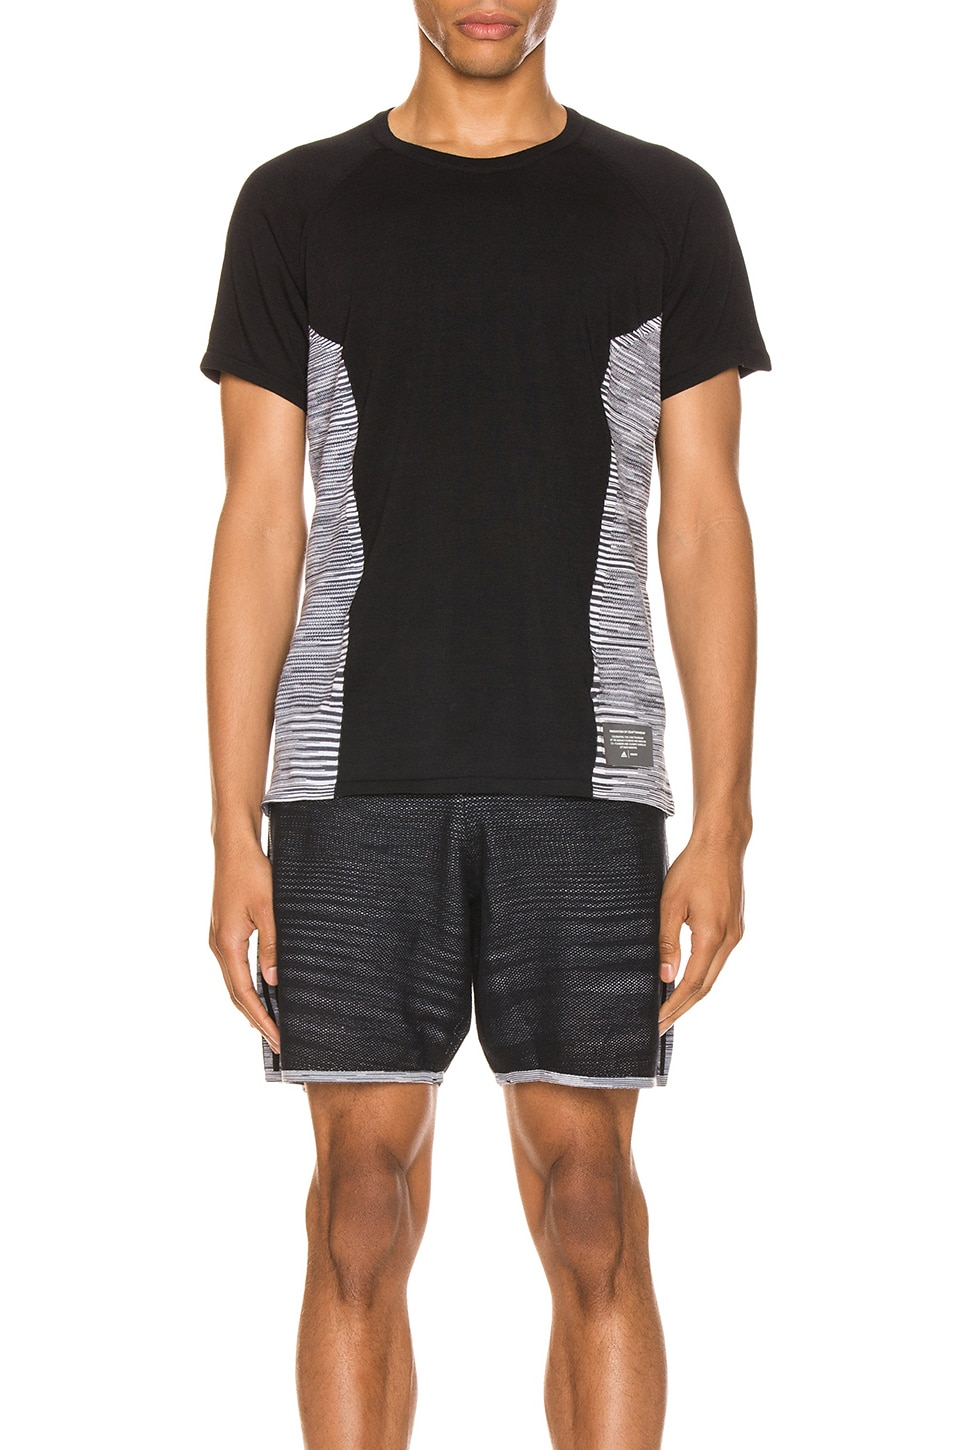 adidas by MISSONI Cru Tee in Black & Dark Grey & White